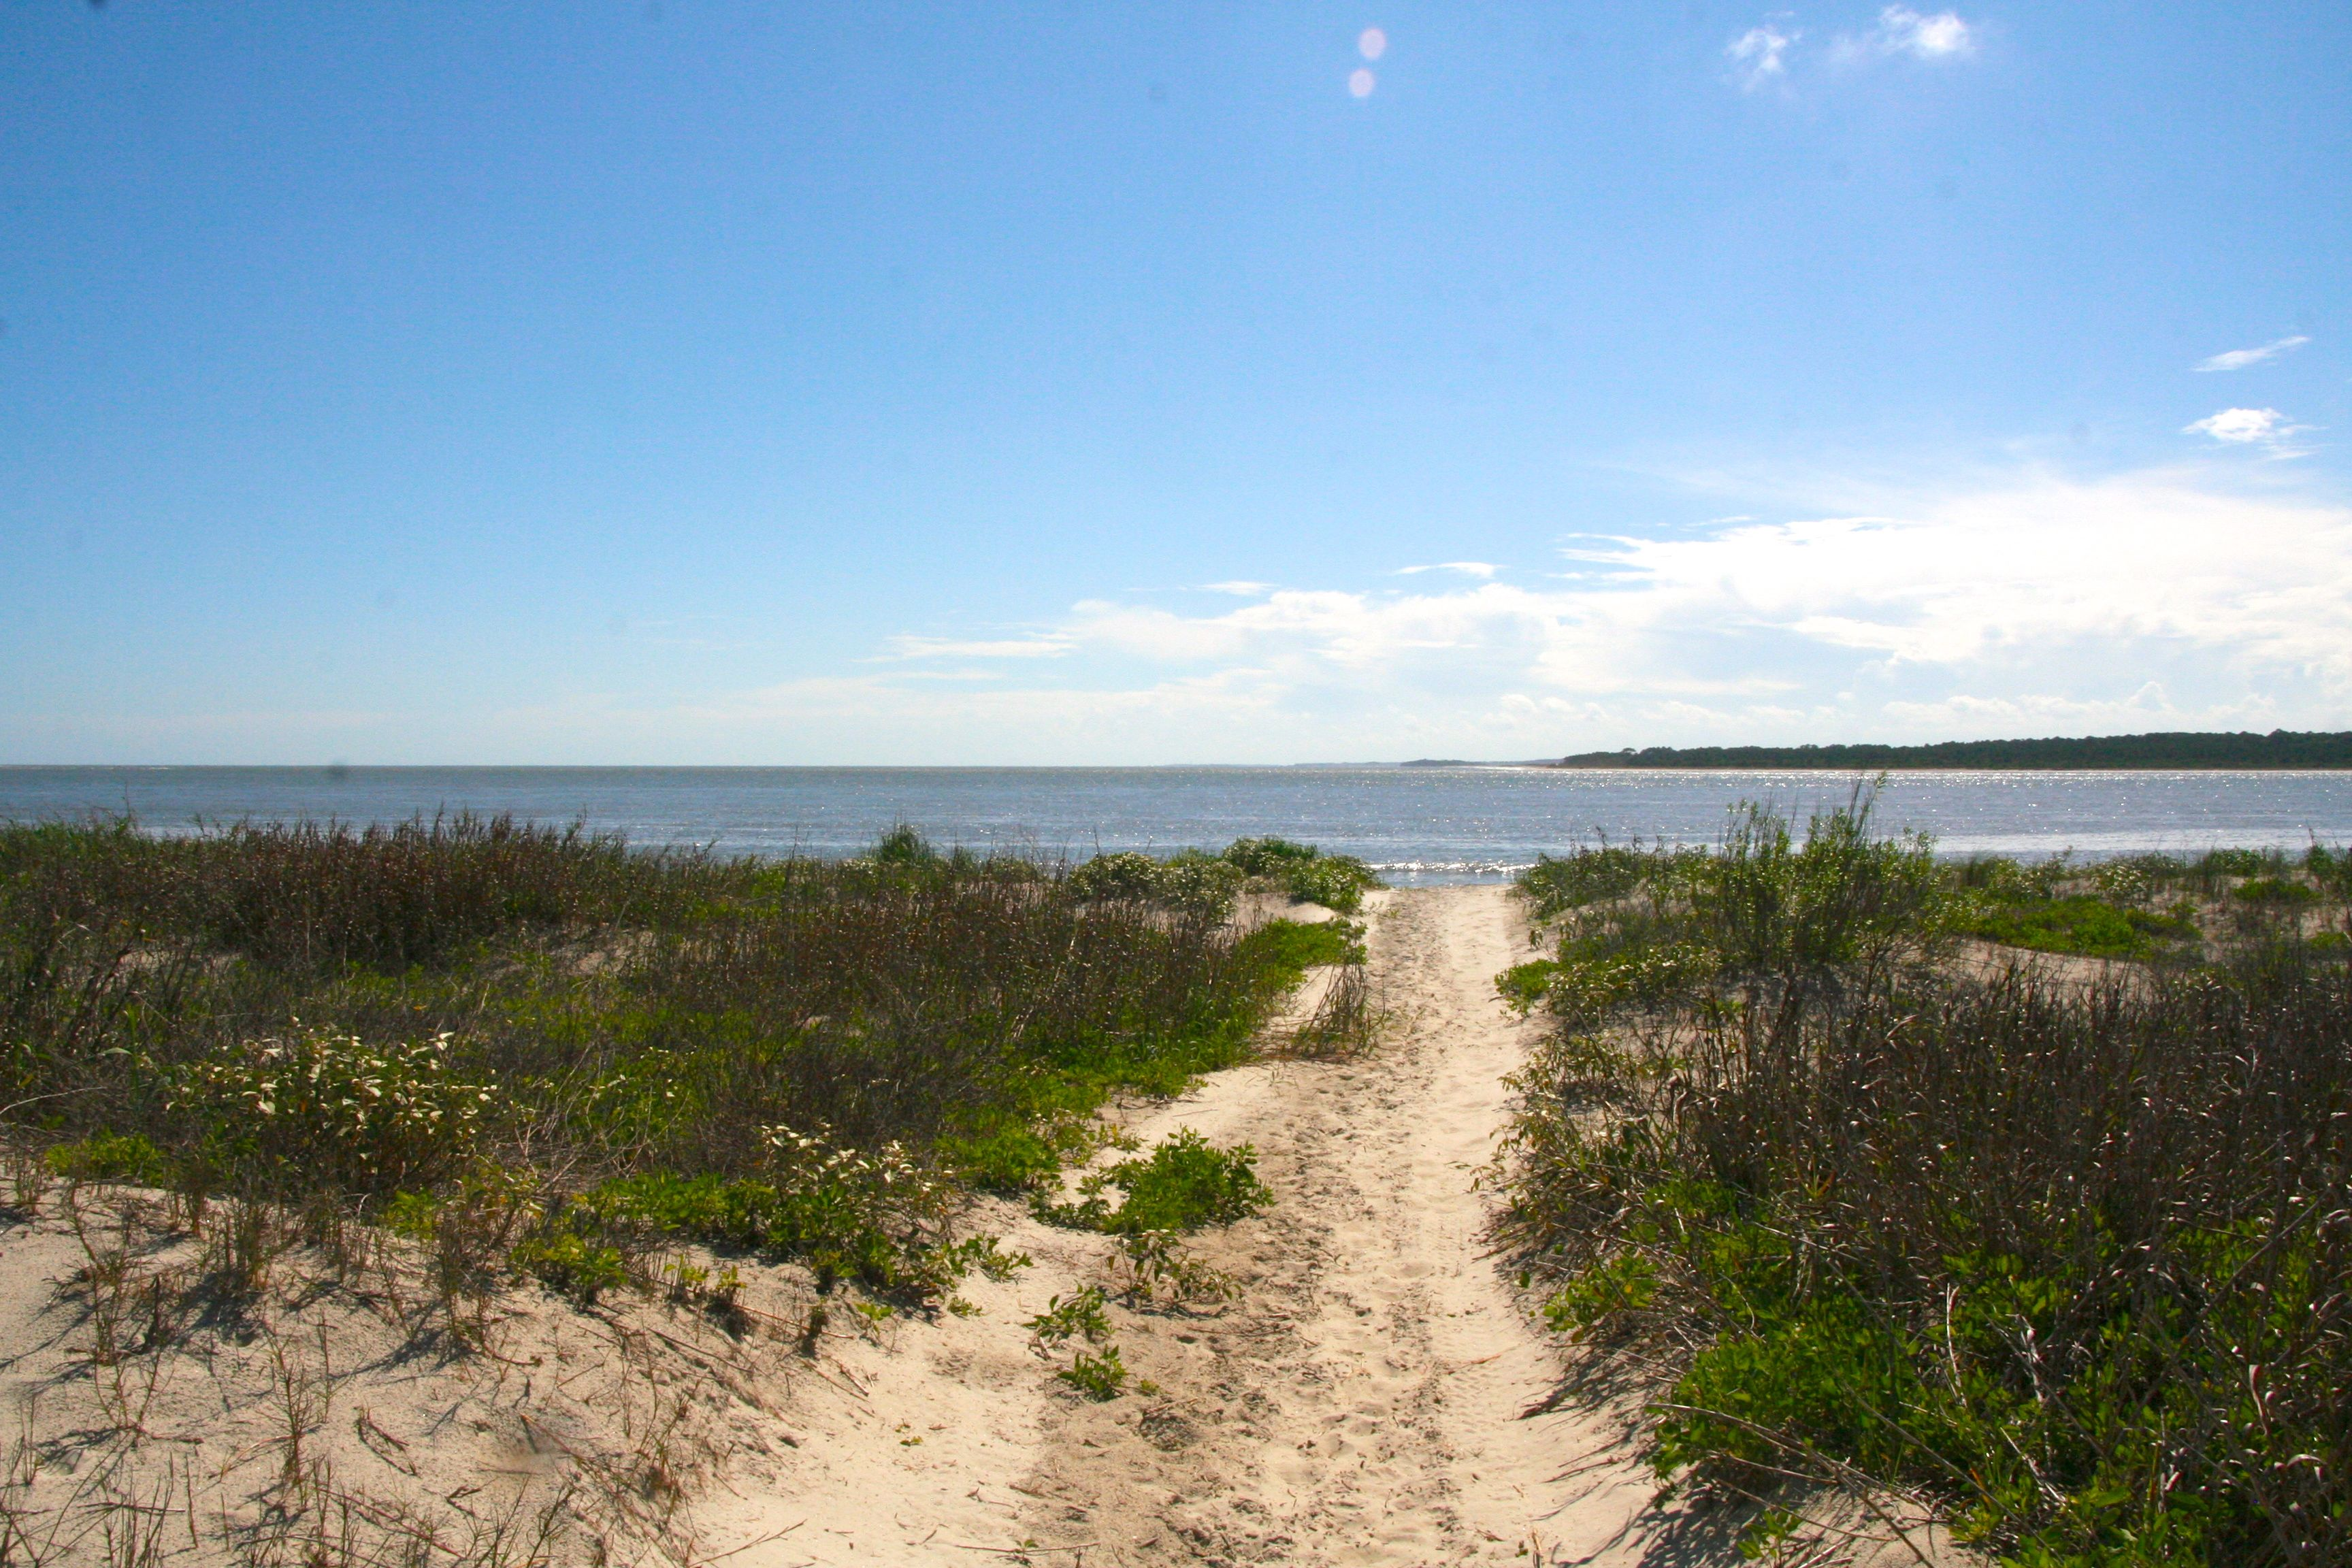 Soft waves and dunes lush with vegetation reflect the beauty of Seabrook.